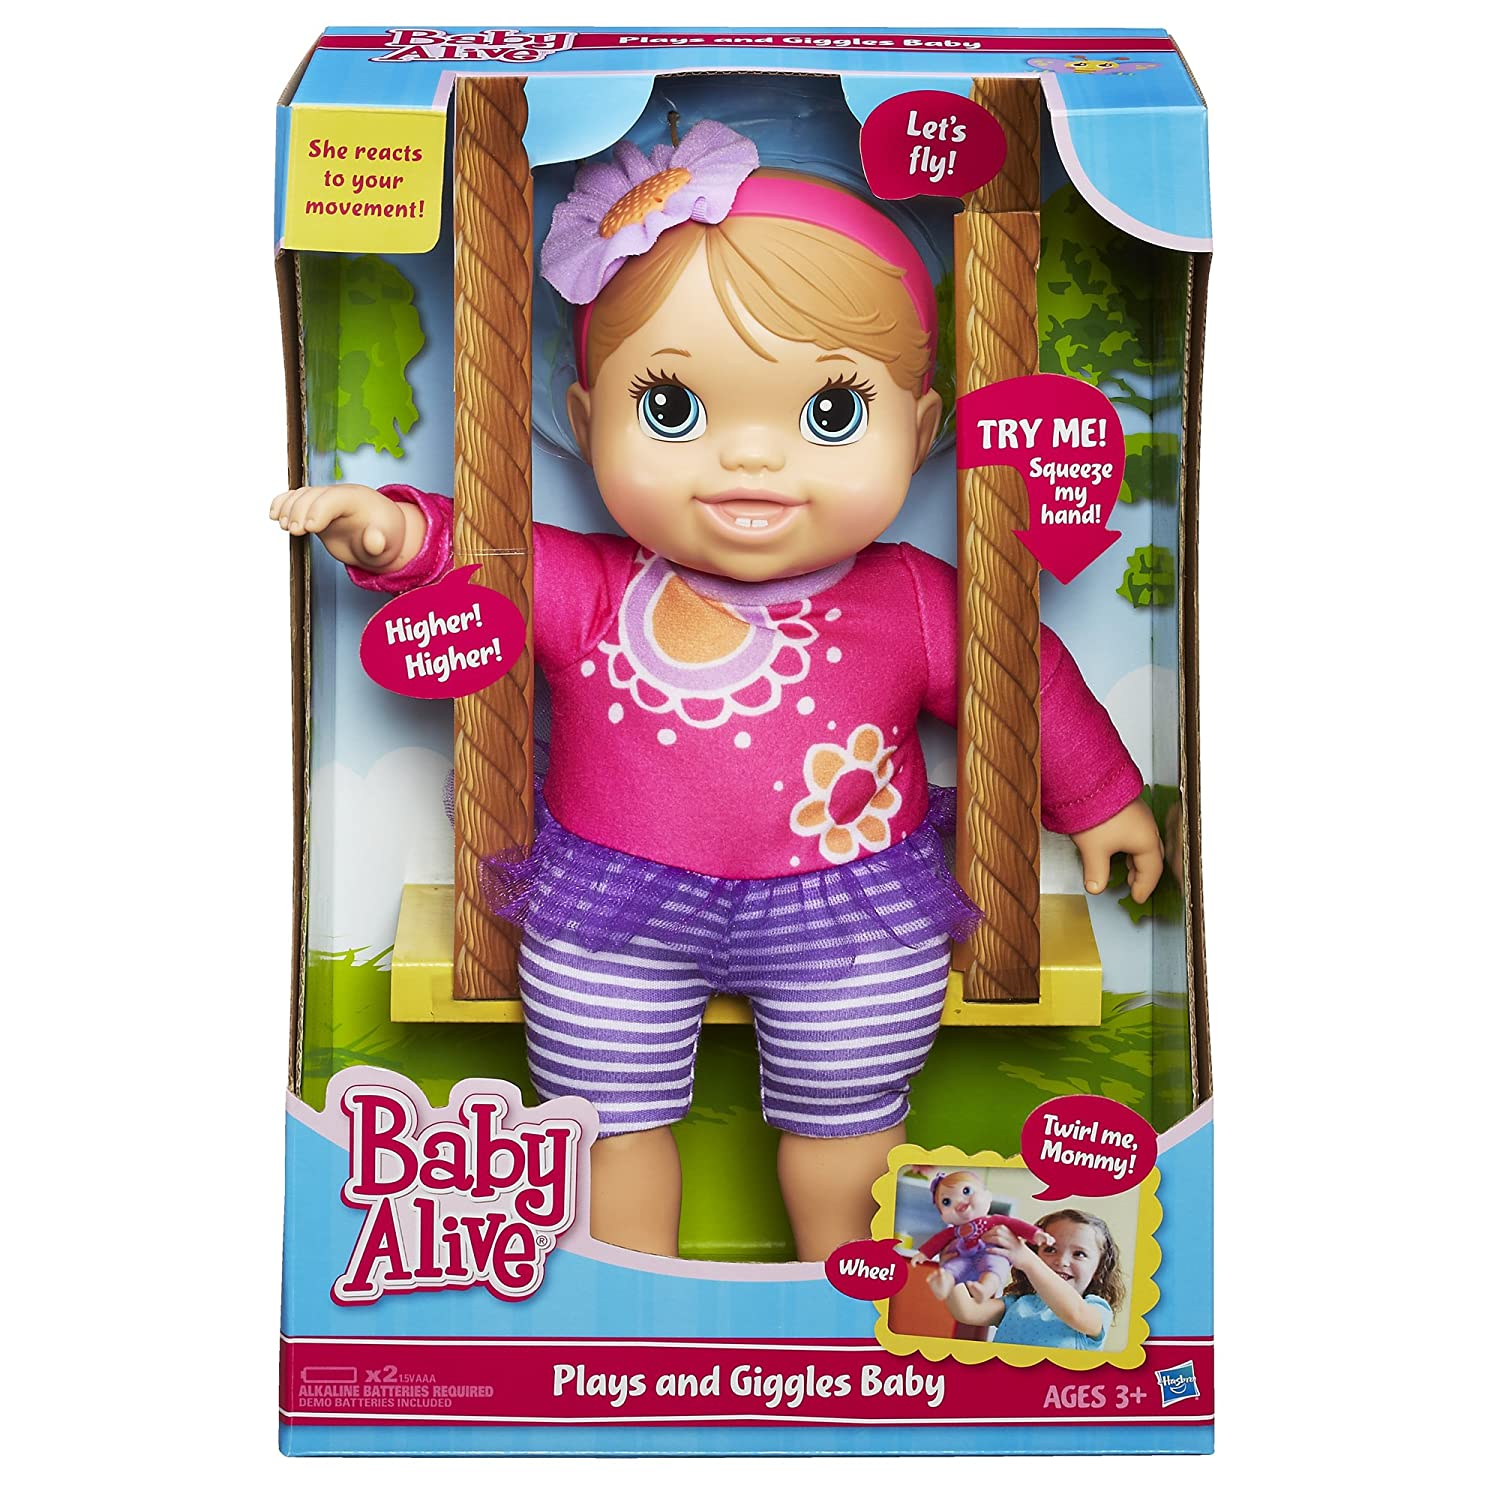 Amazon Baby Alive Plays and Giggles Blonde Baby Doll Toys & Games